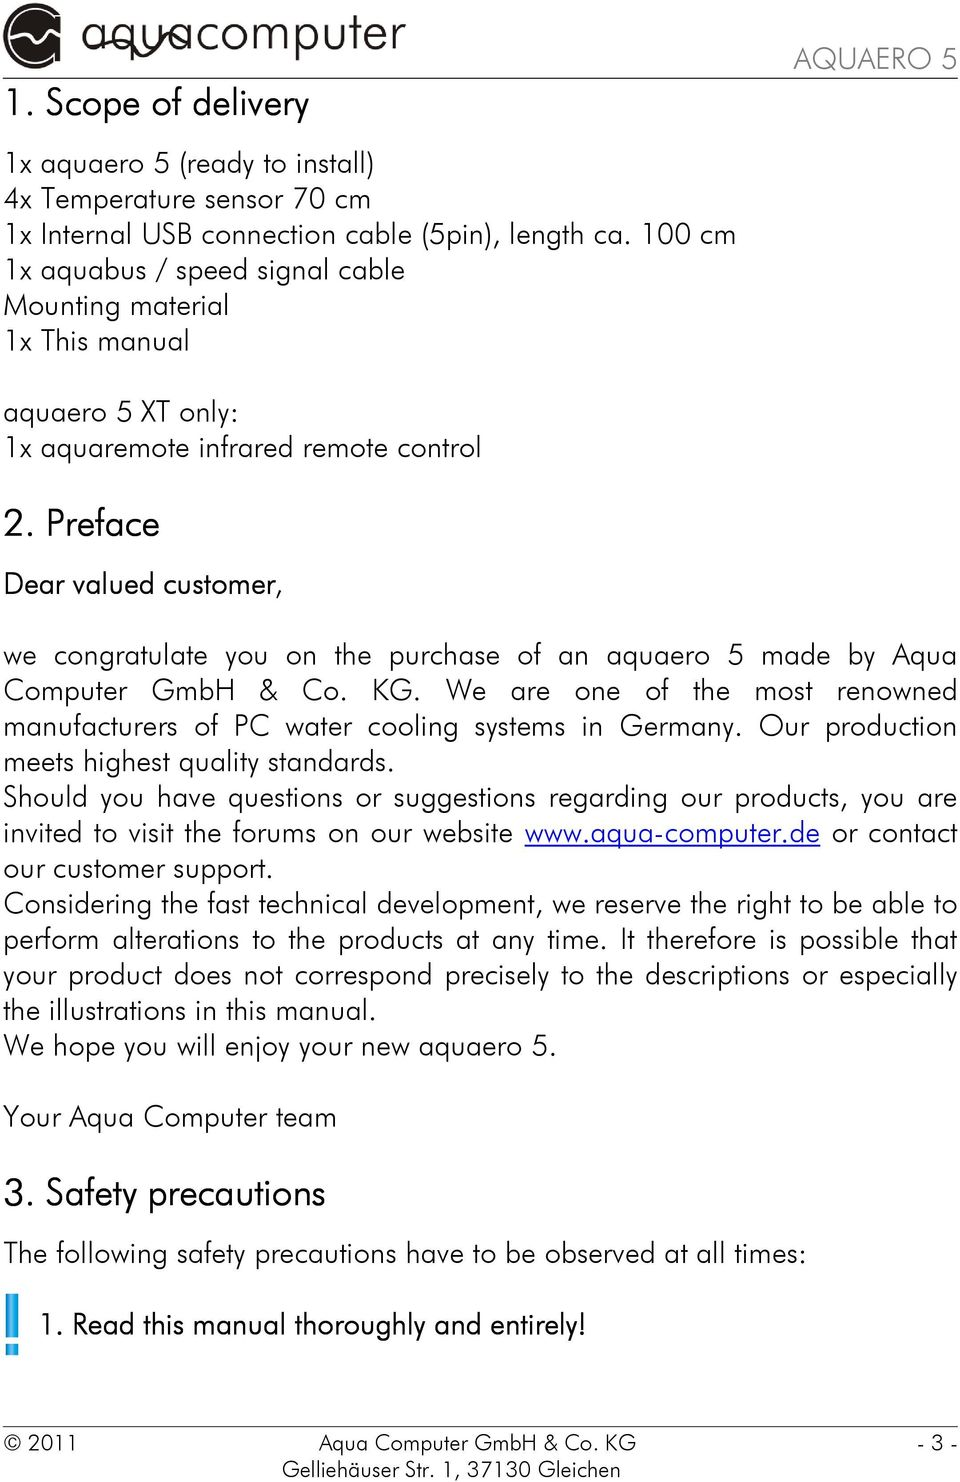 Preface Dear valued customer, we congratulate you on the purchase of an aquaero 5 made by Aqua Computer GmbH & Co. KG.